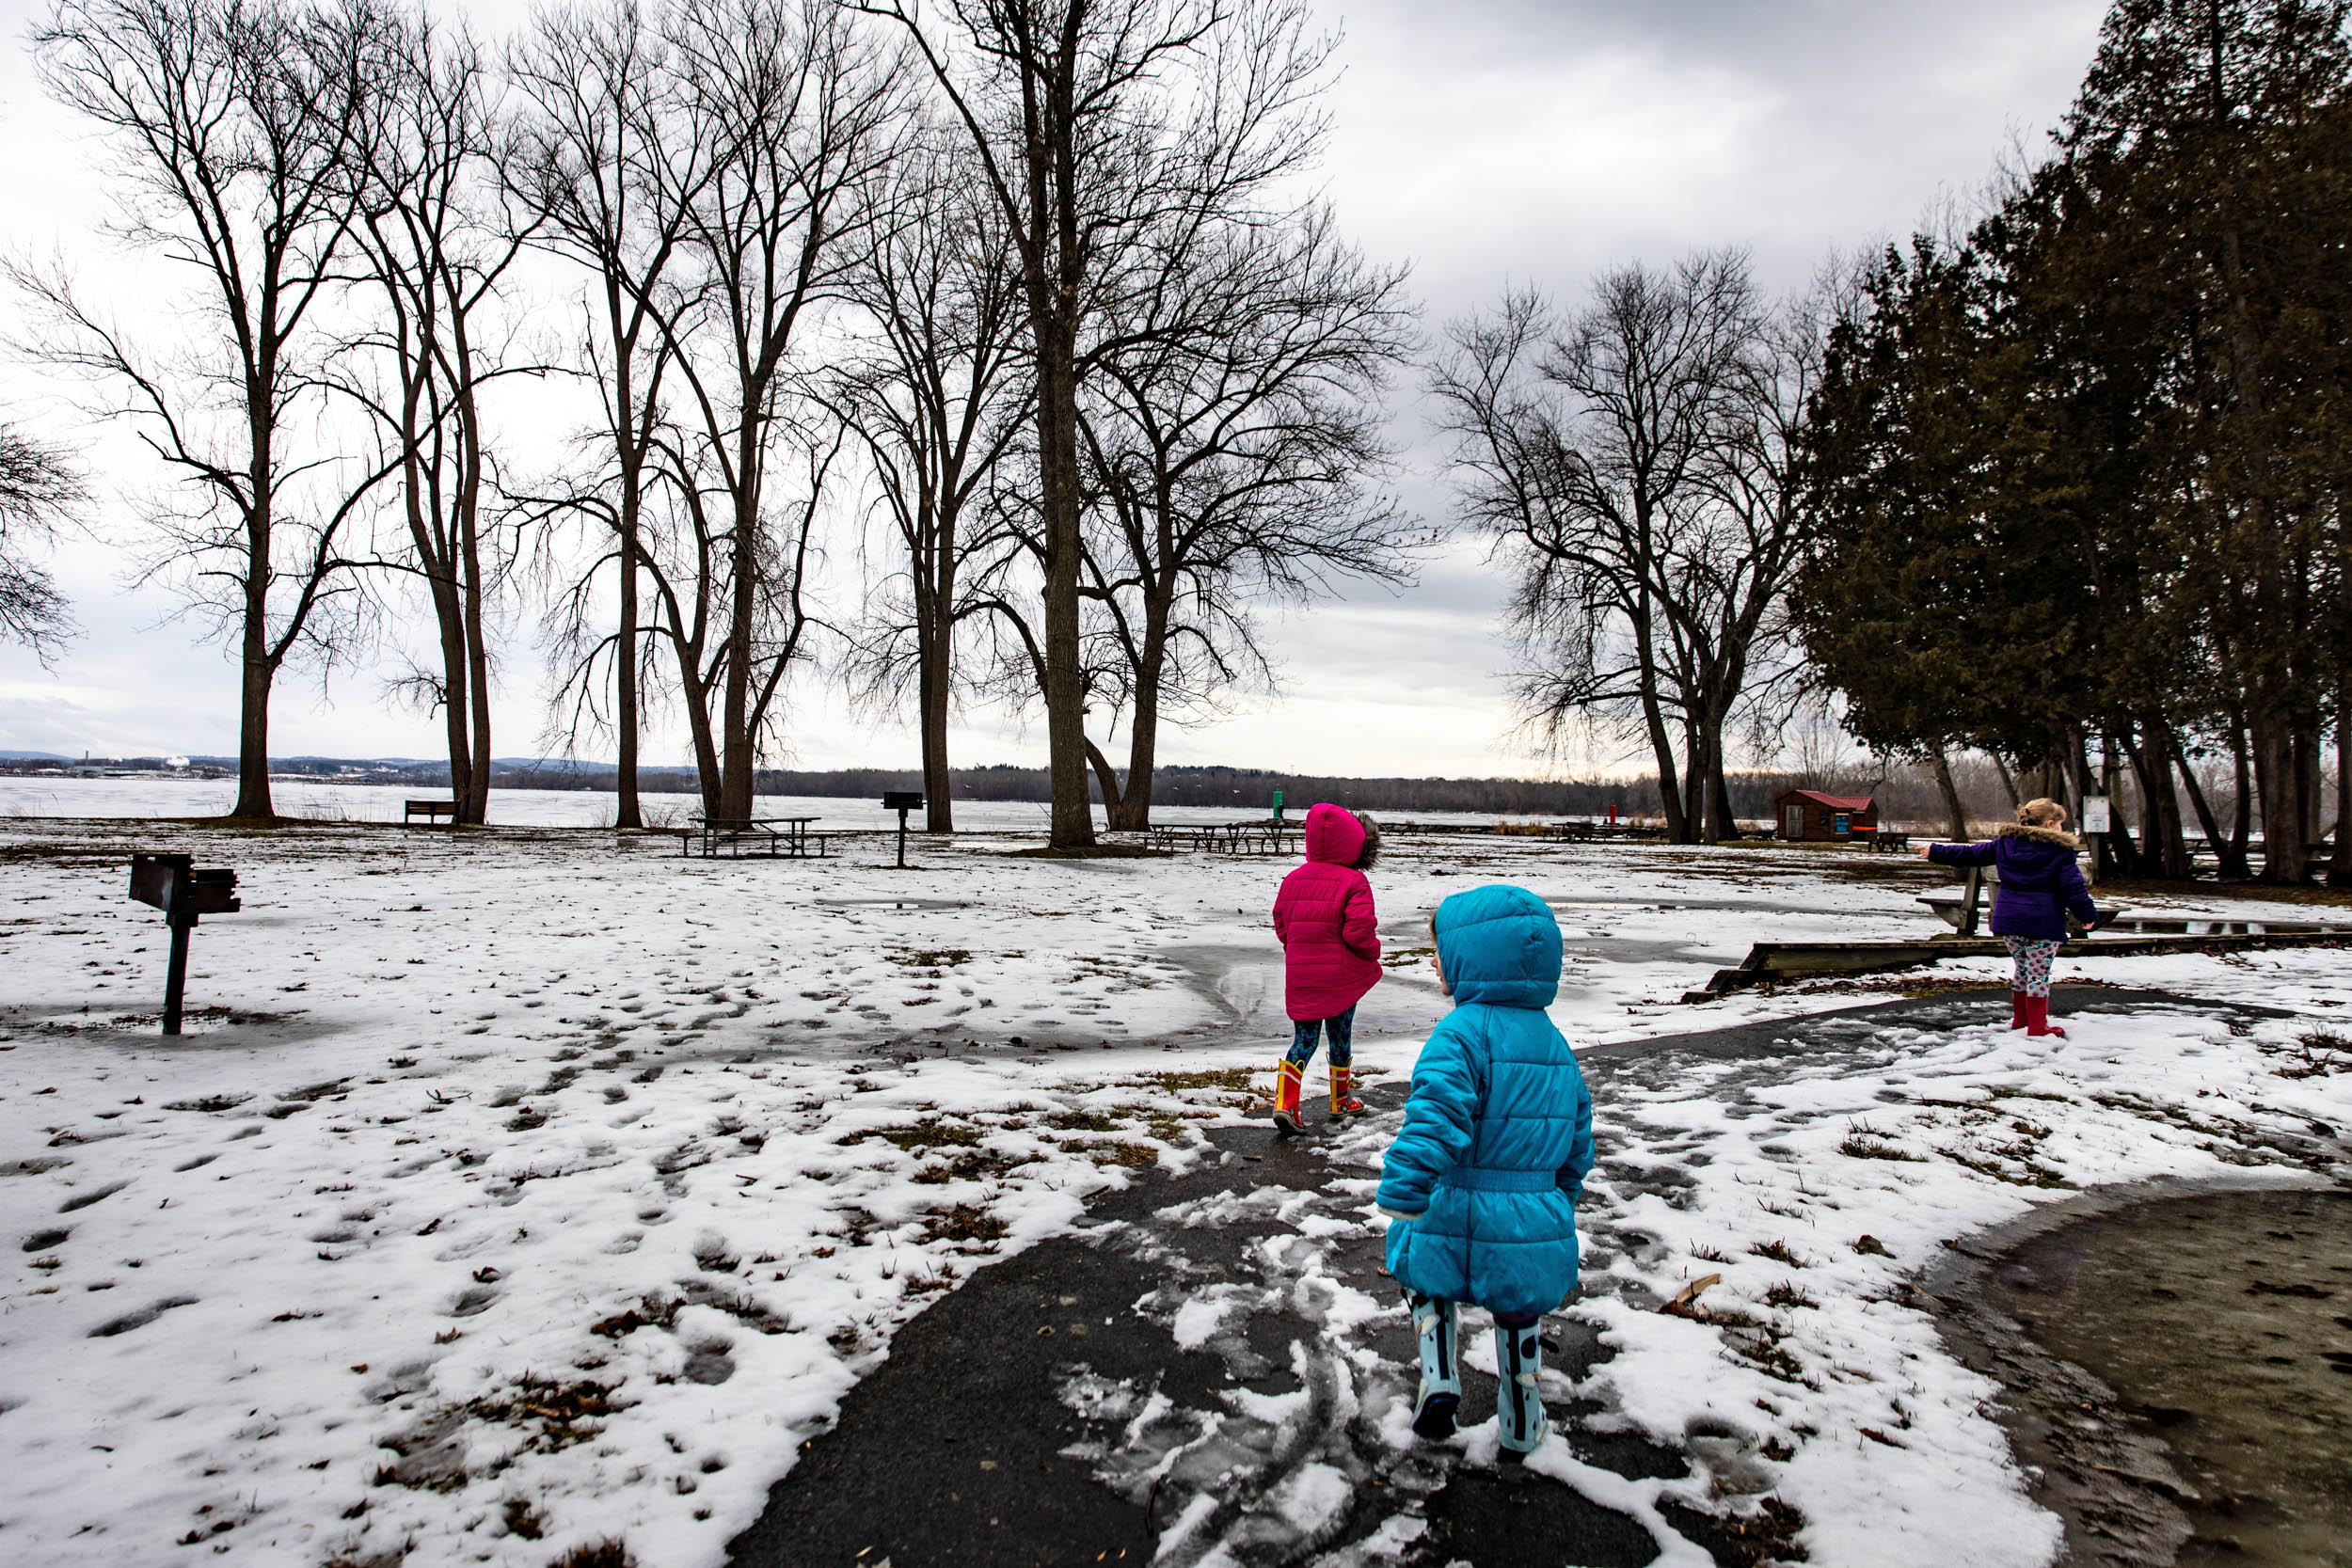 Kaylee and her sisters braved the waning winter cold to spend park of their Sunday outside at the Onondoga Lake State Park. (Photo by Maranie Staab/GroundTruth)